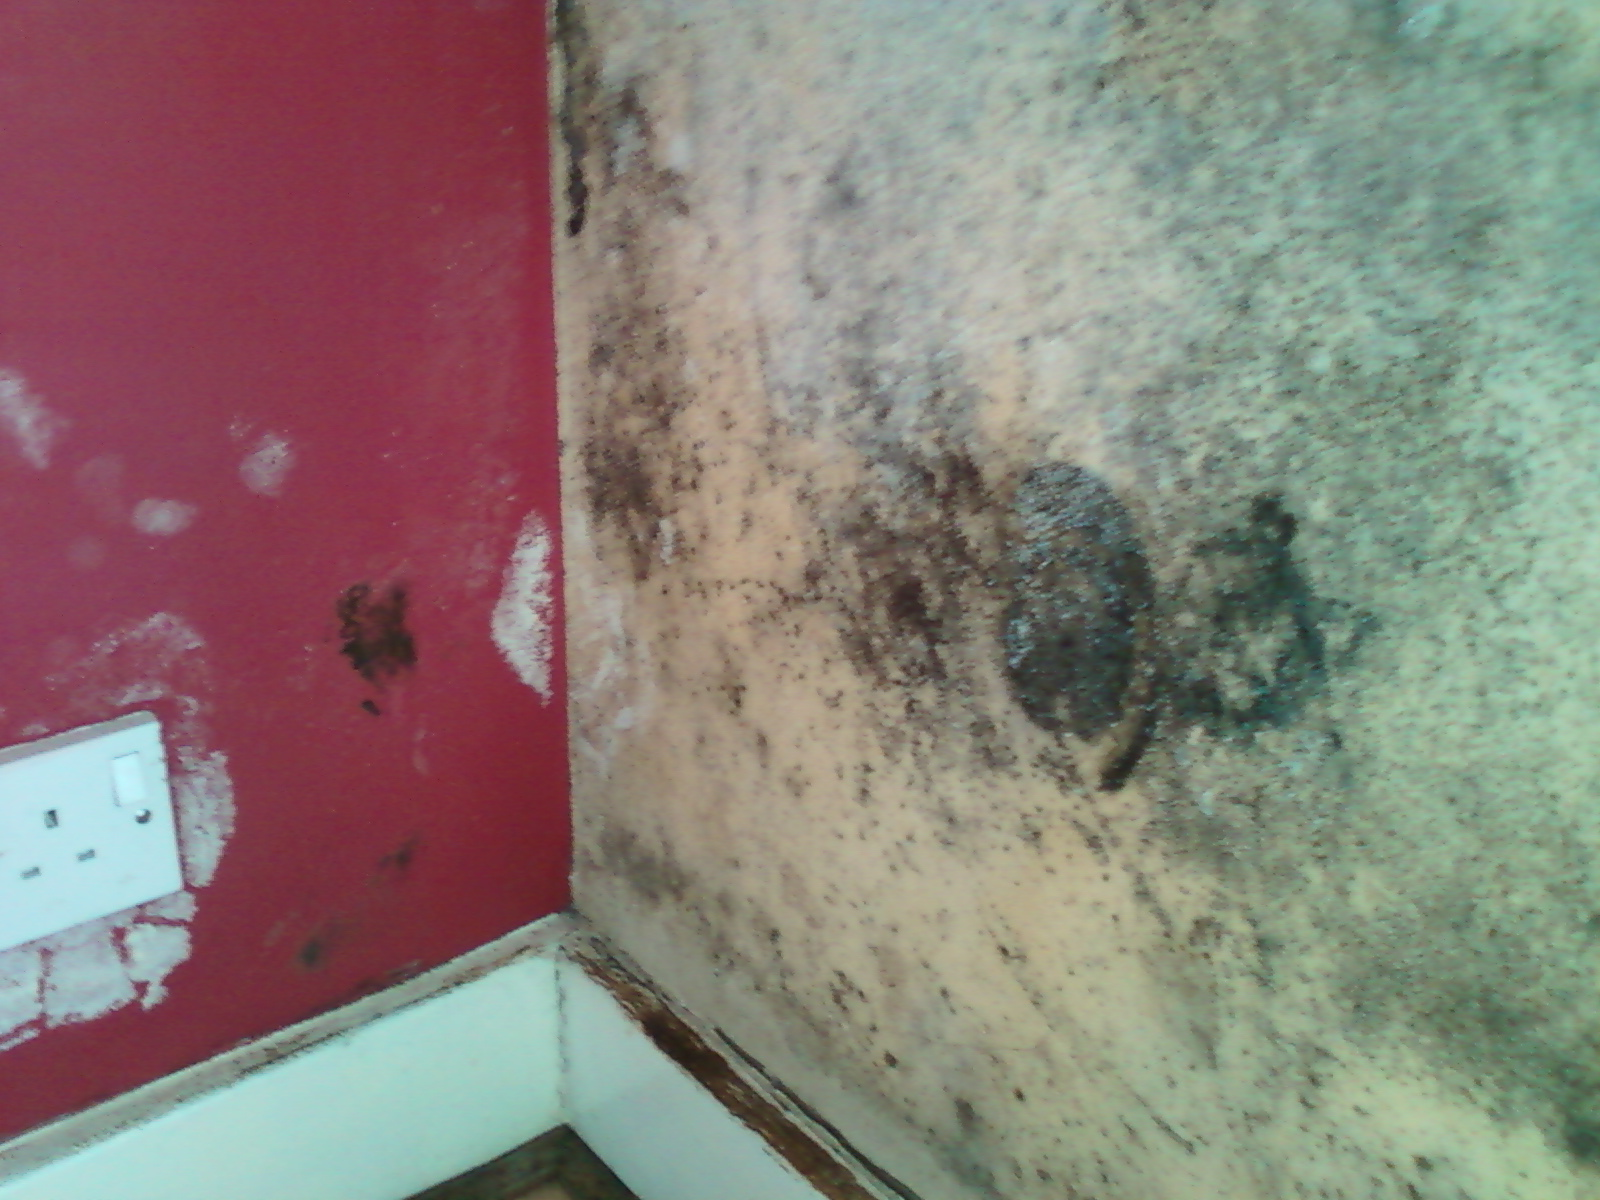 Black mould on the external wall